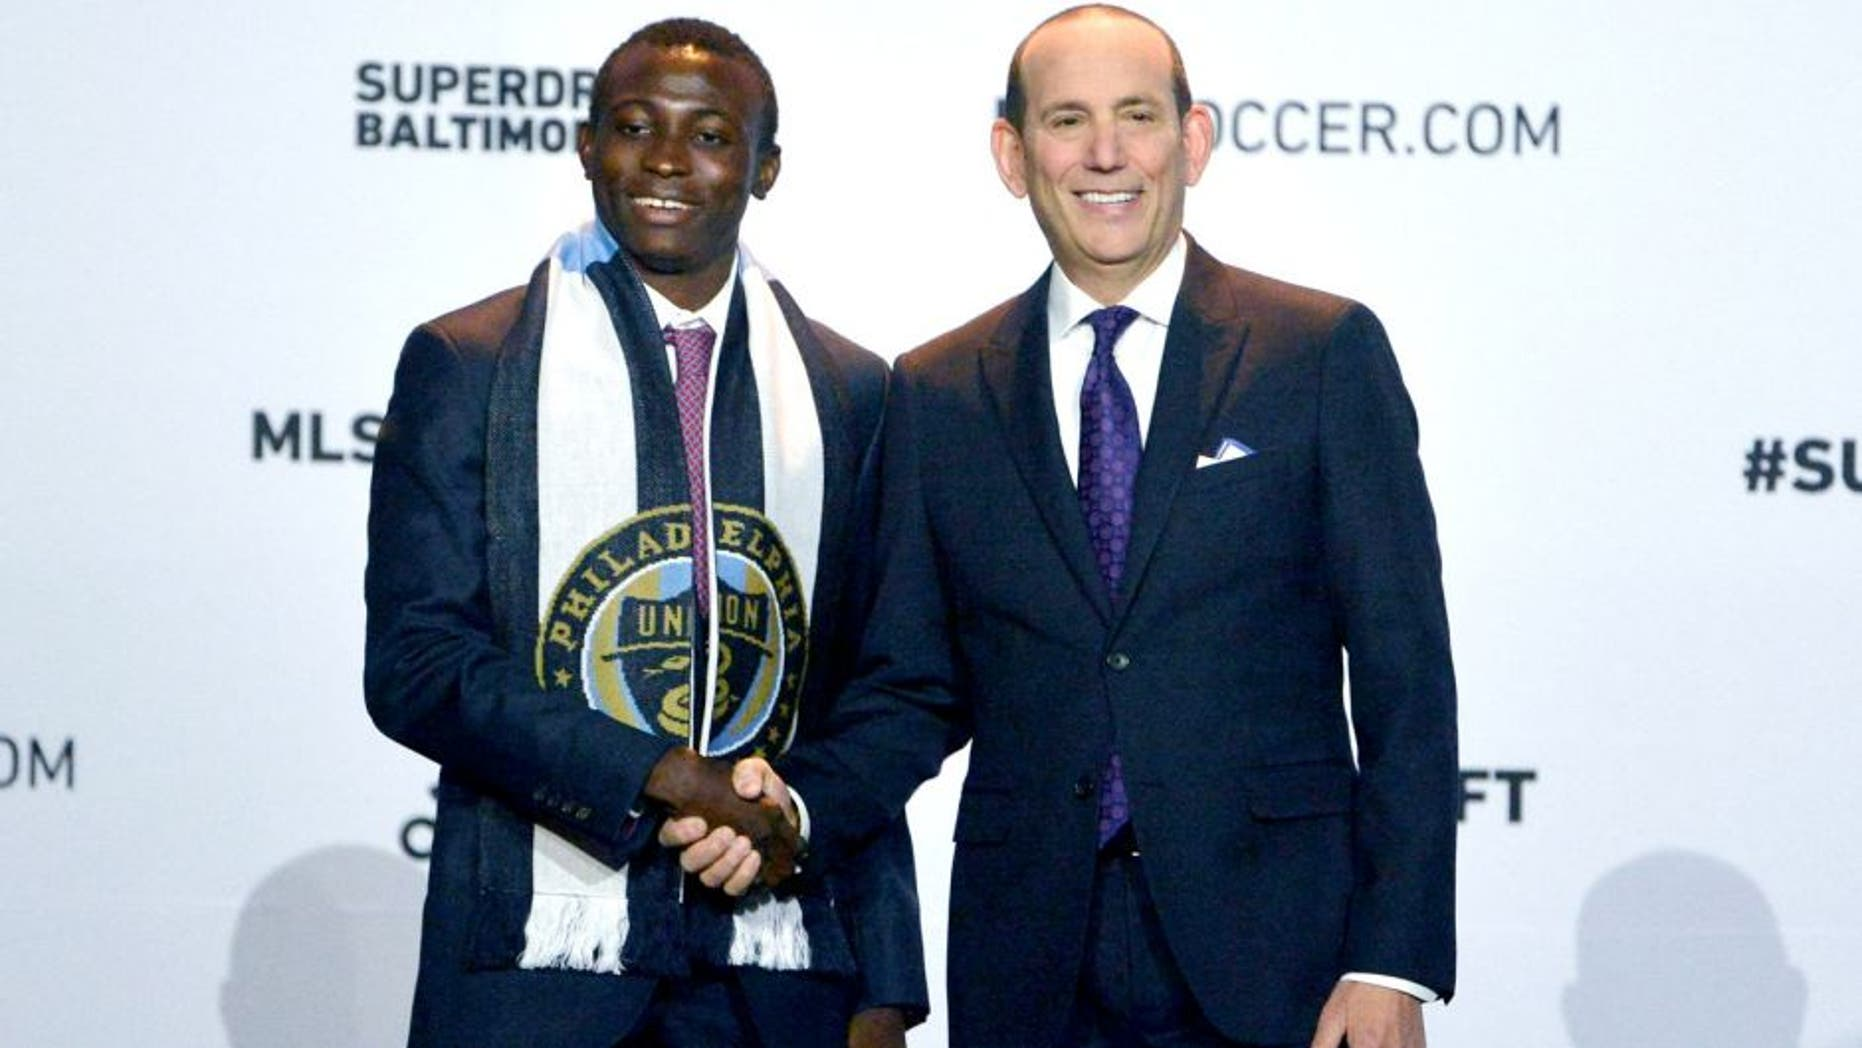 Jan 14, 2016; Baltimore, MD, USA; Joshua Yaro shakes hands with commissioner Don Garber after being selected number two overall by the Philadelphia Union during the 2016 MLS SuperDraft at Baltimore Convention Center. Mandatory Credit: Tommy Gilligan-USA TODAY Sports